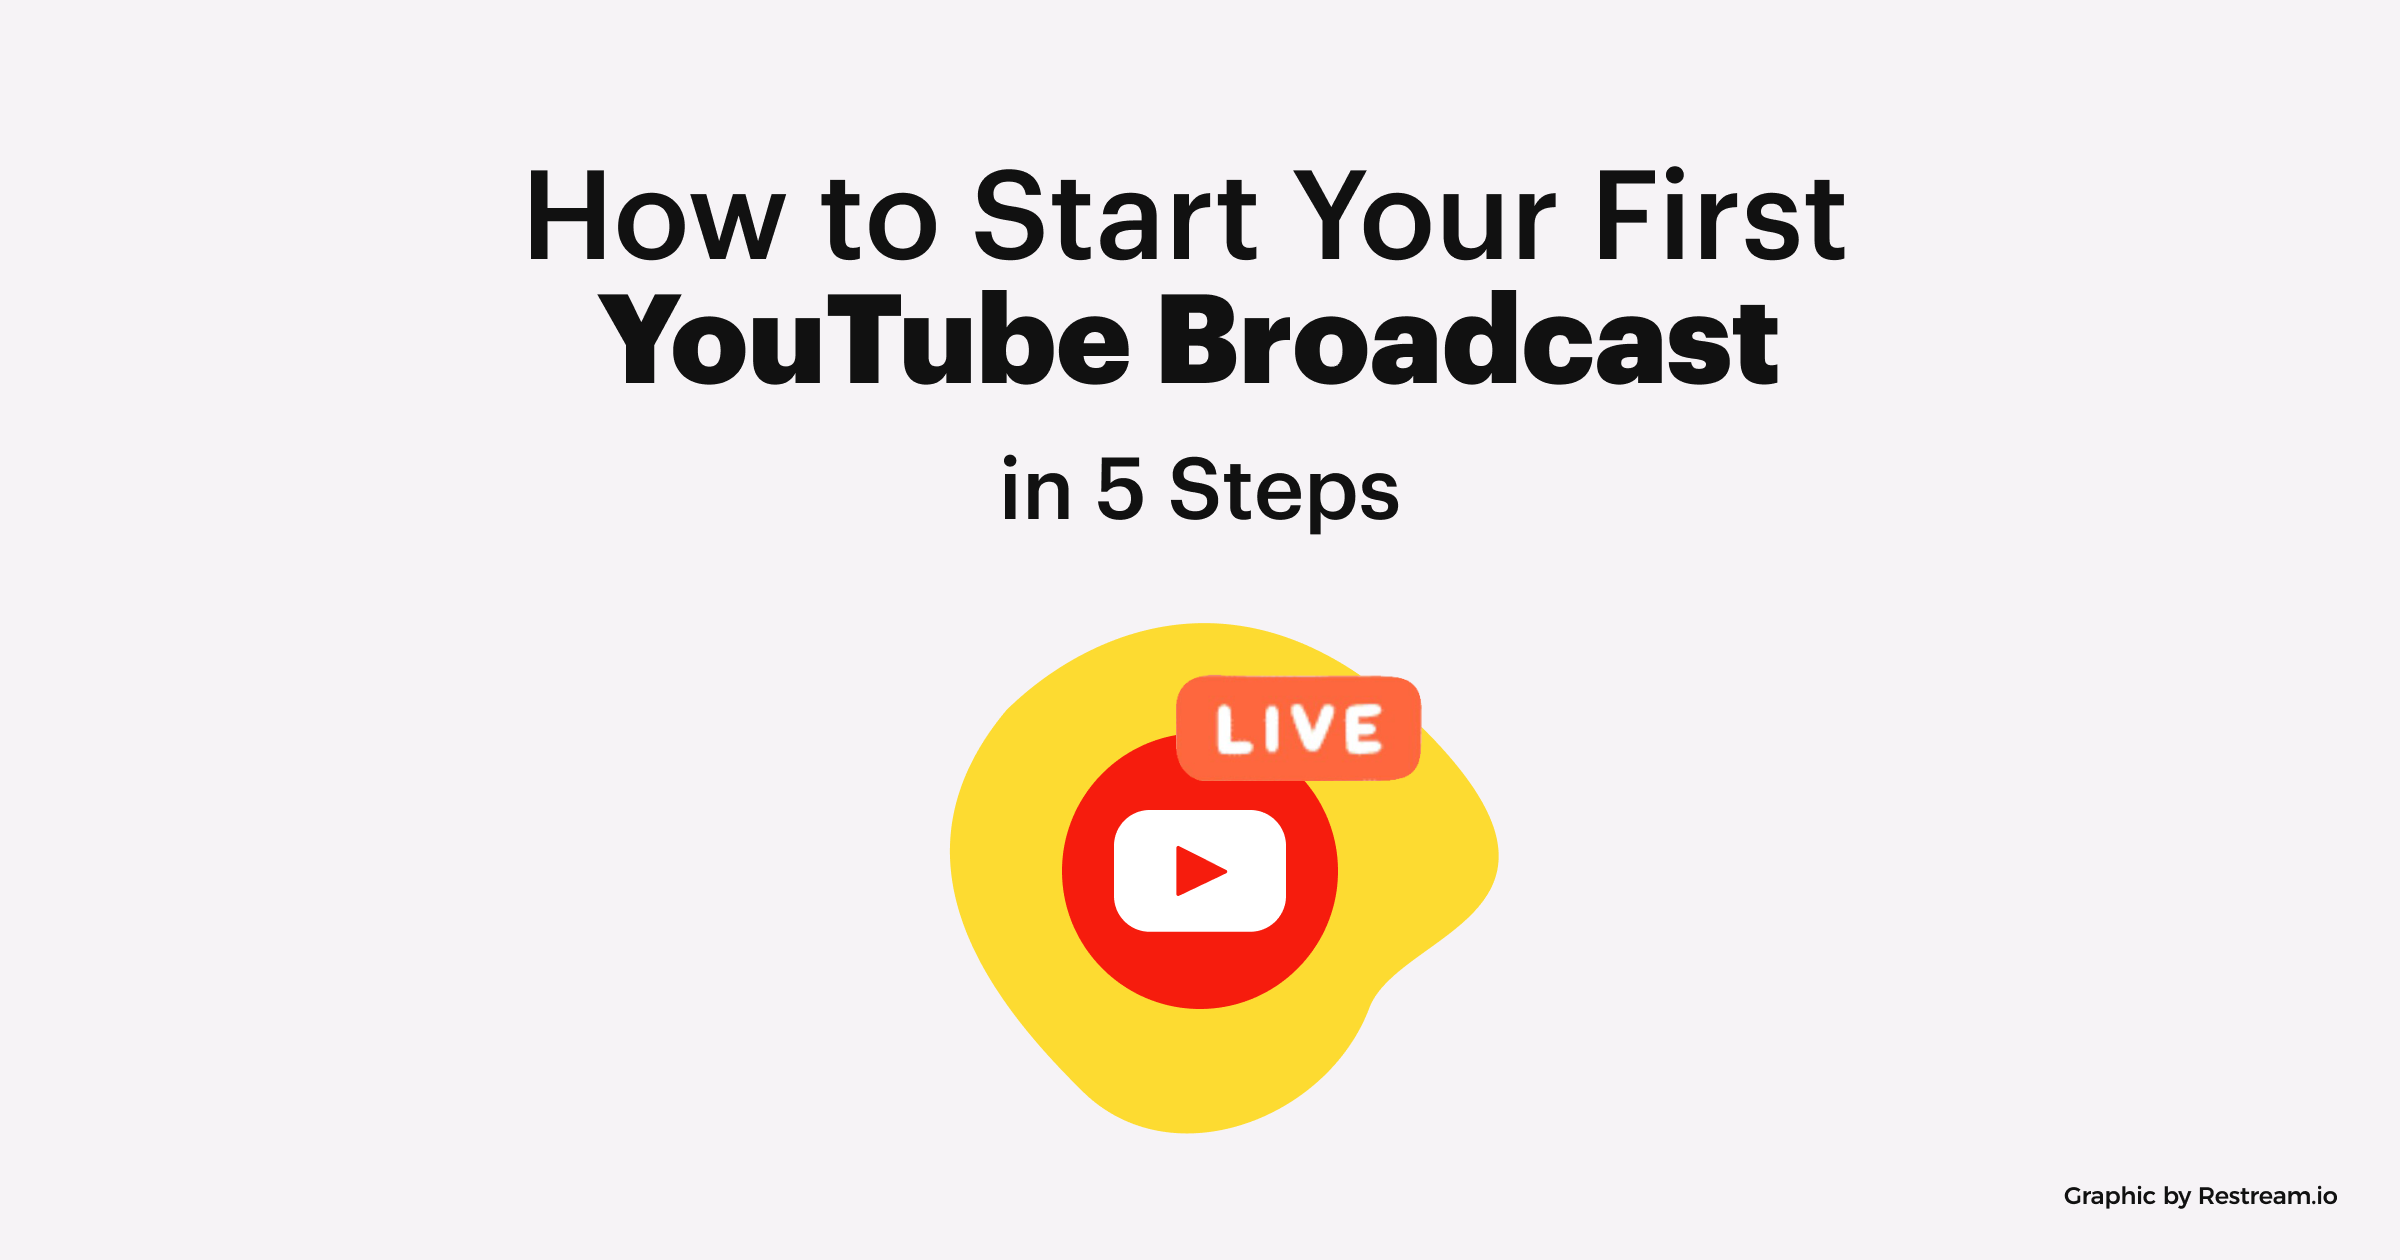 How to Start Your First YouTube Broadcast in Five Steps